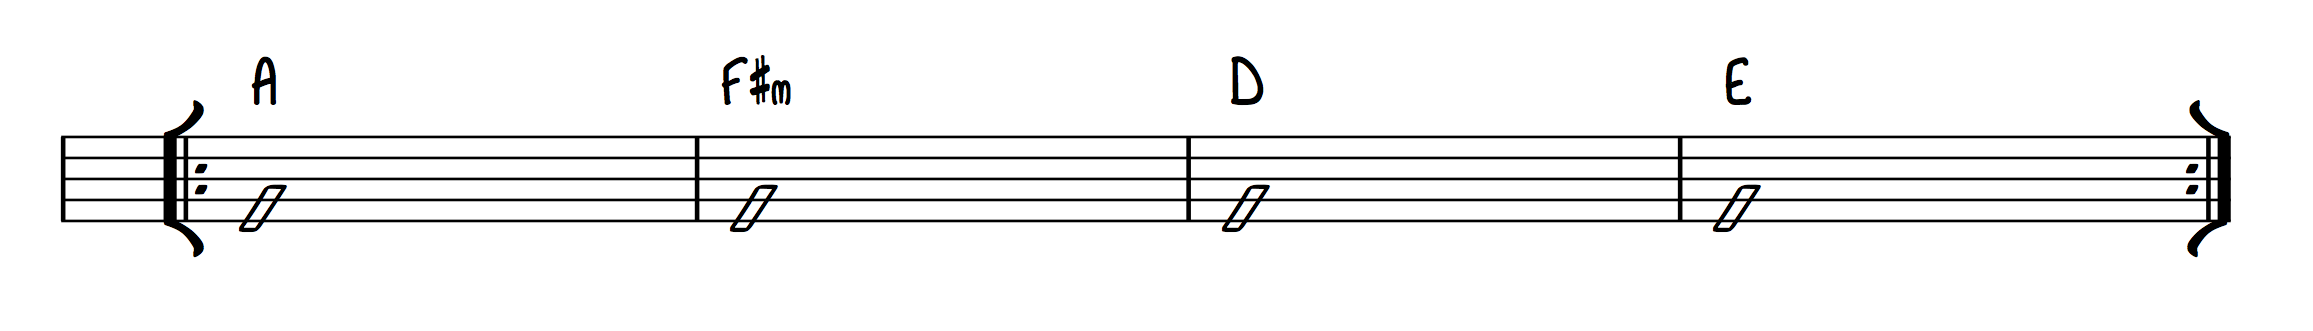 Chord Exercise - A F#m D E